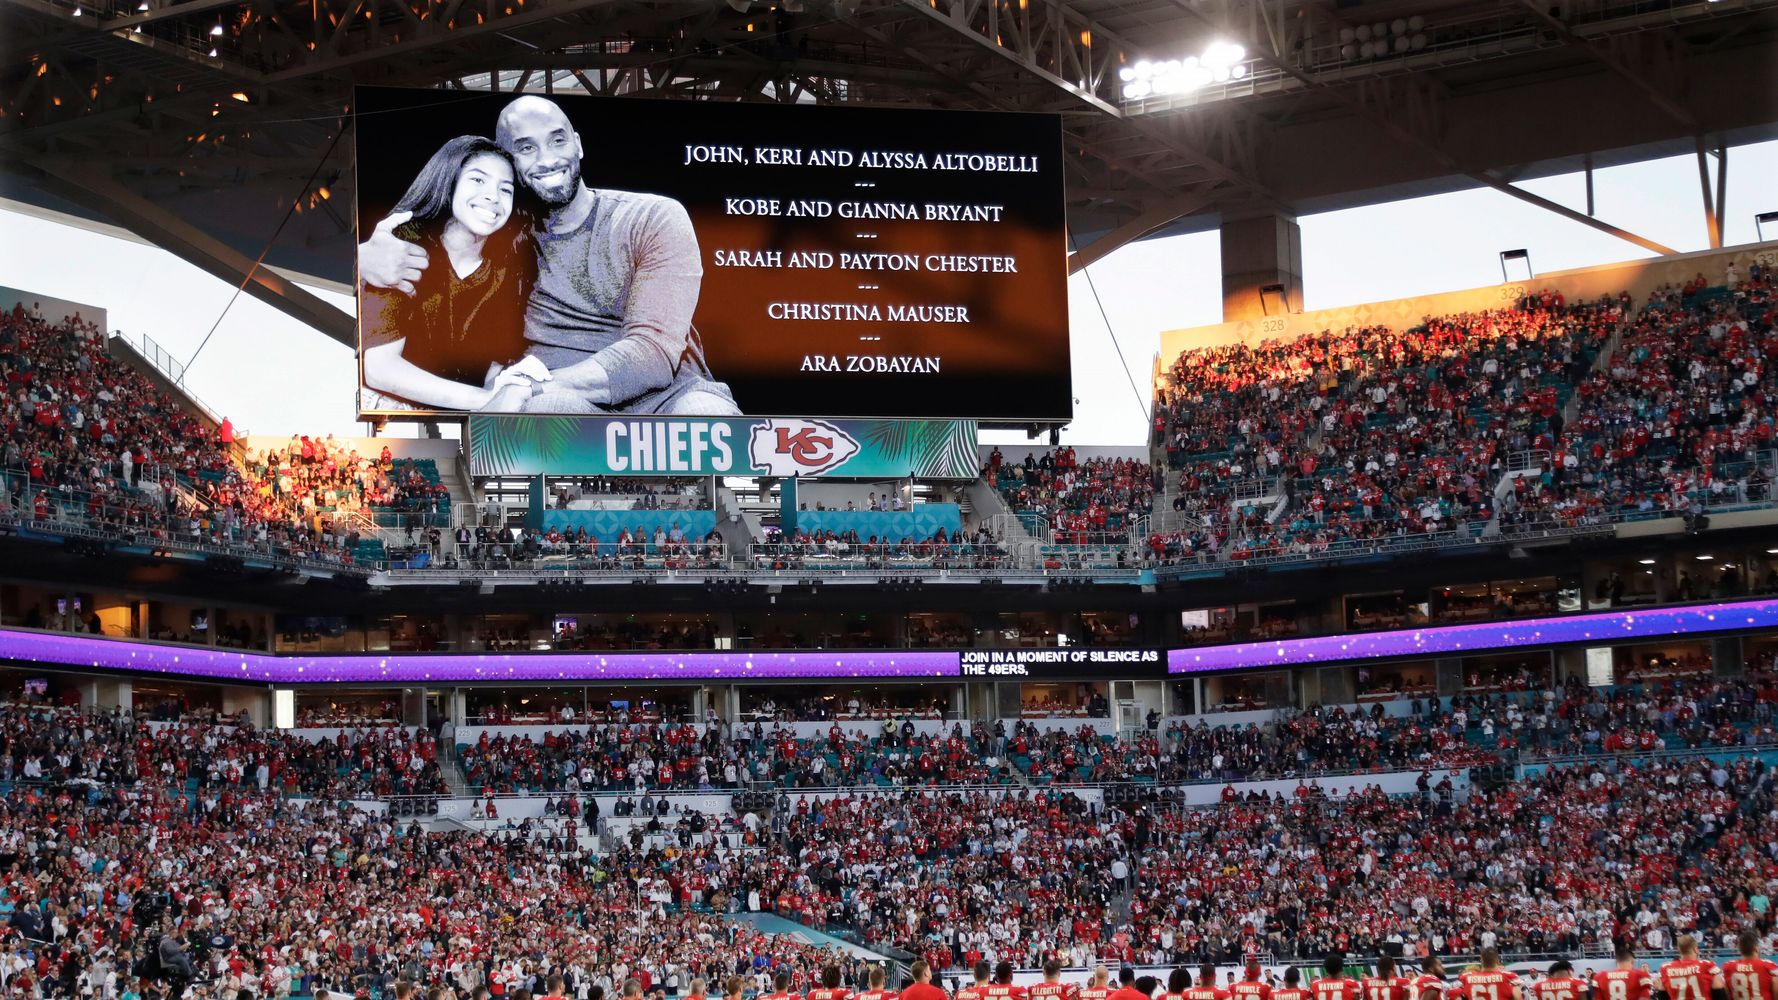 Westlake Legal Group 5e375961220000340423d747 Super Bowl Players Honor Kobe Bryant With Moment Of Silence On 24-Yard Line